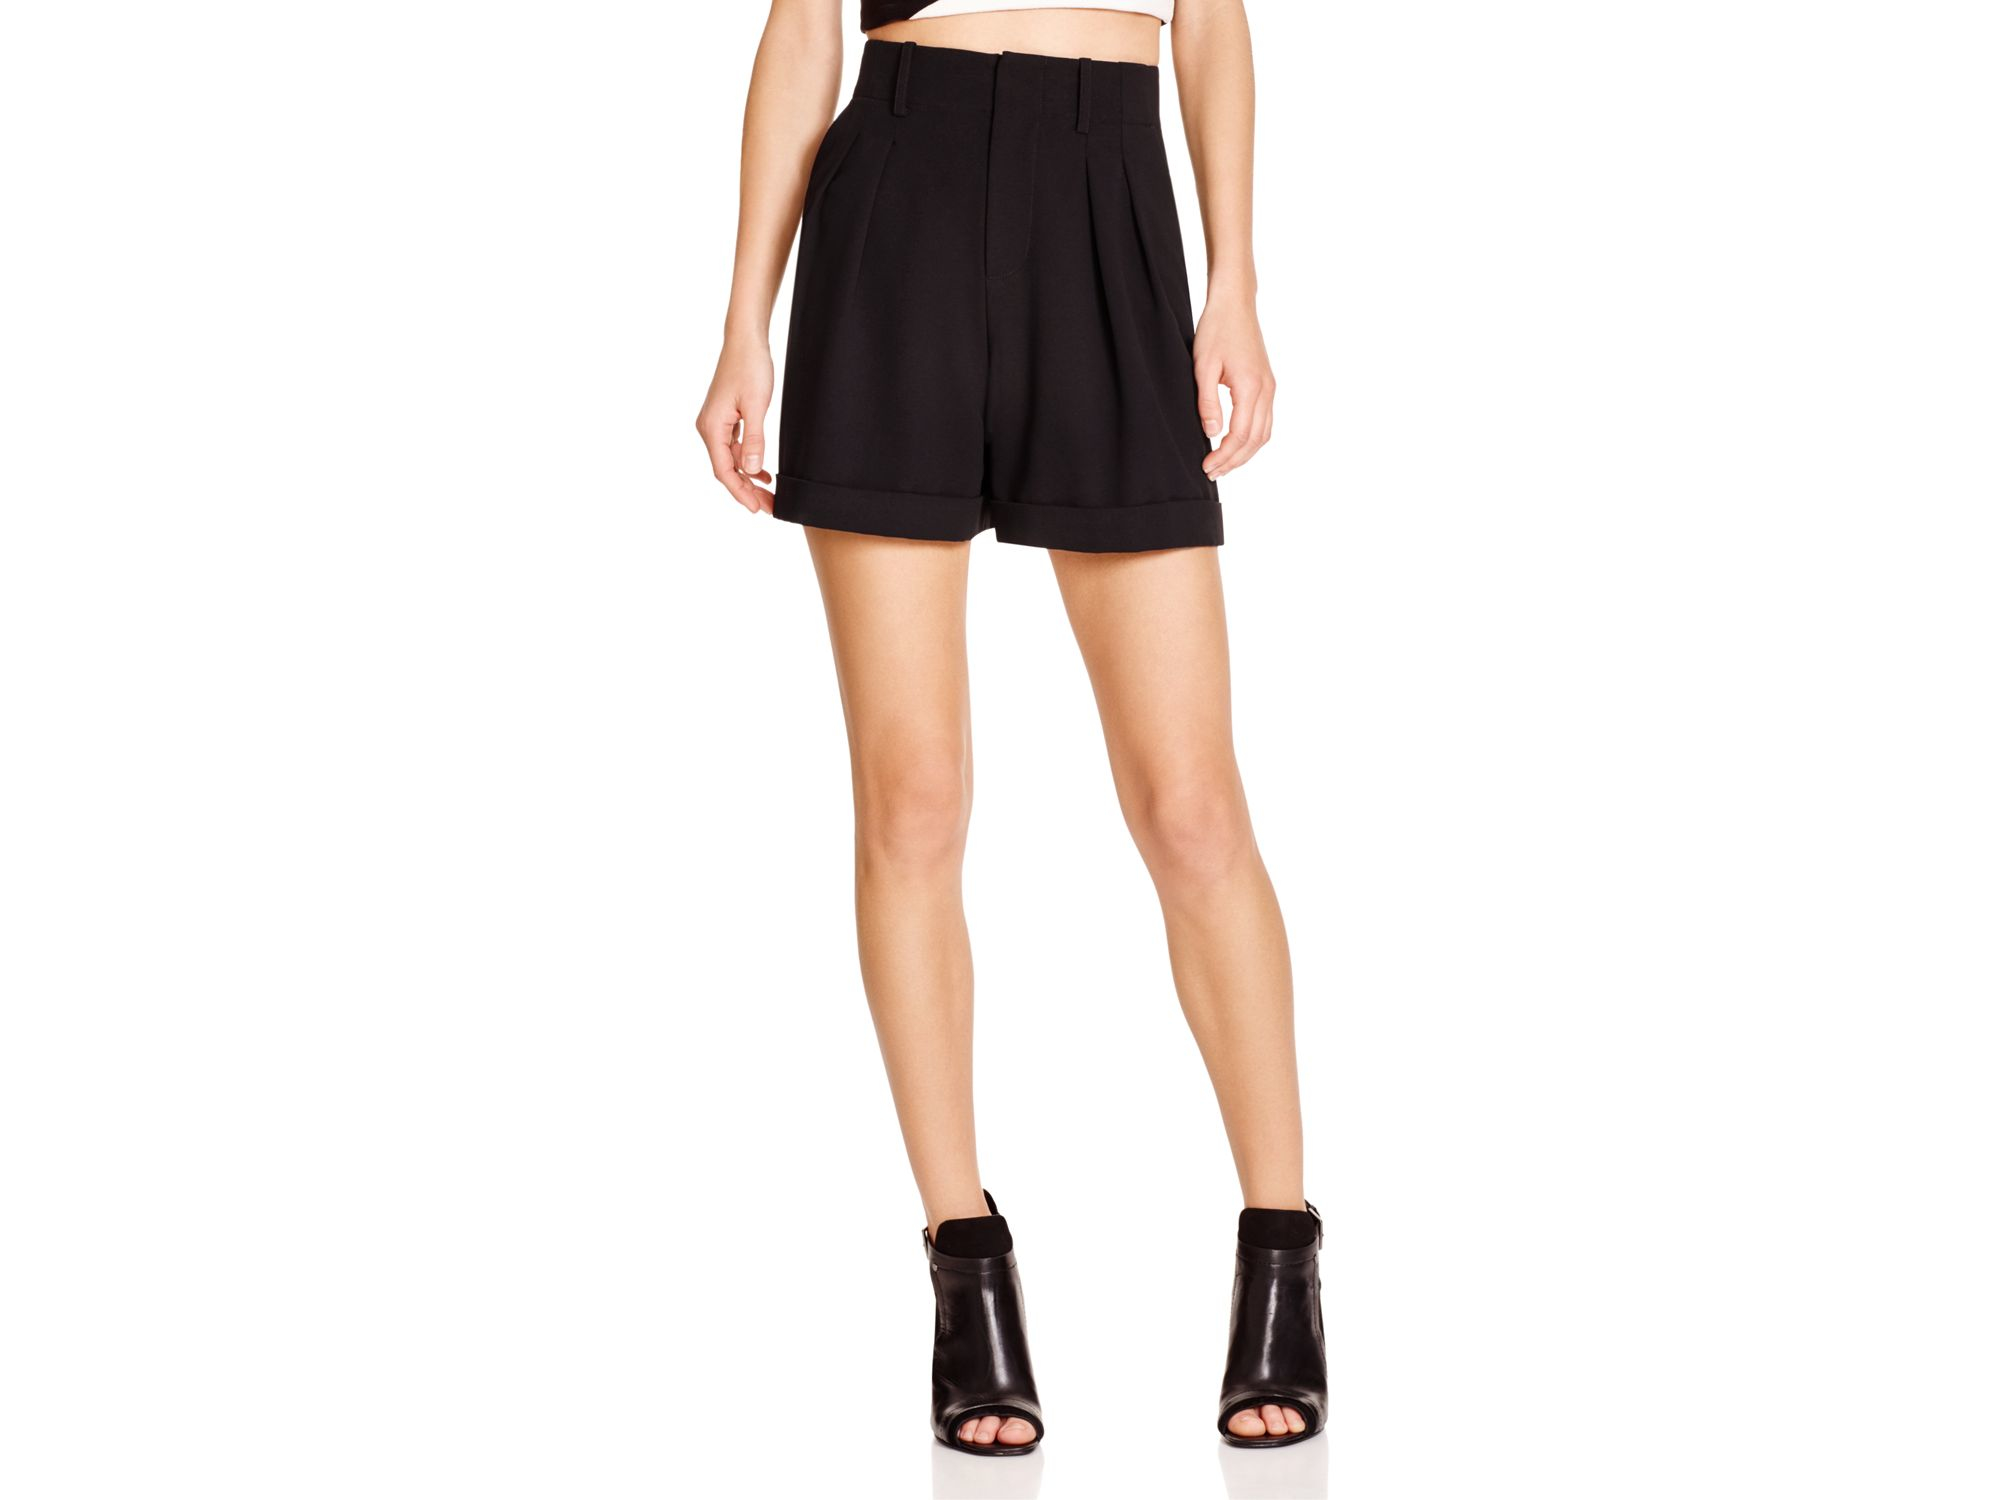 Alice   olivia Alice   Olivia Amani High Waist Pleated Shorts in ...